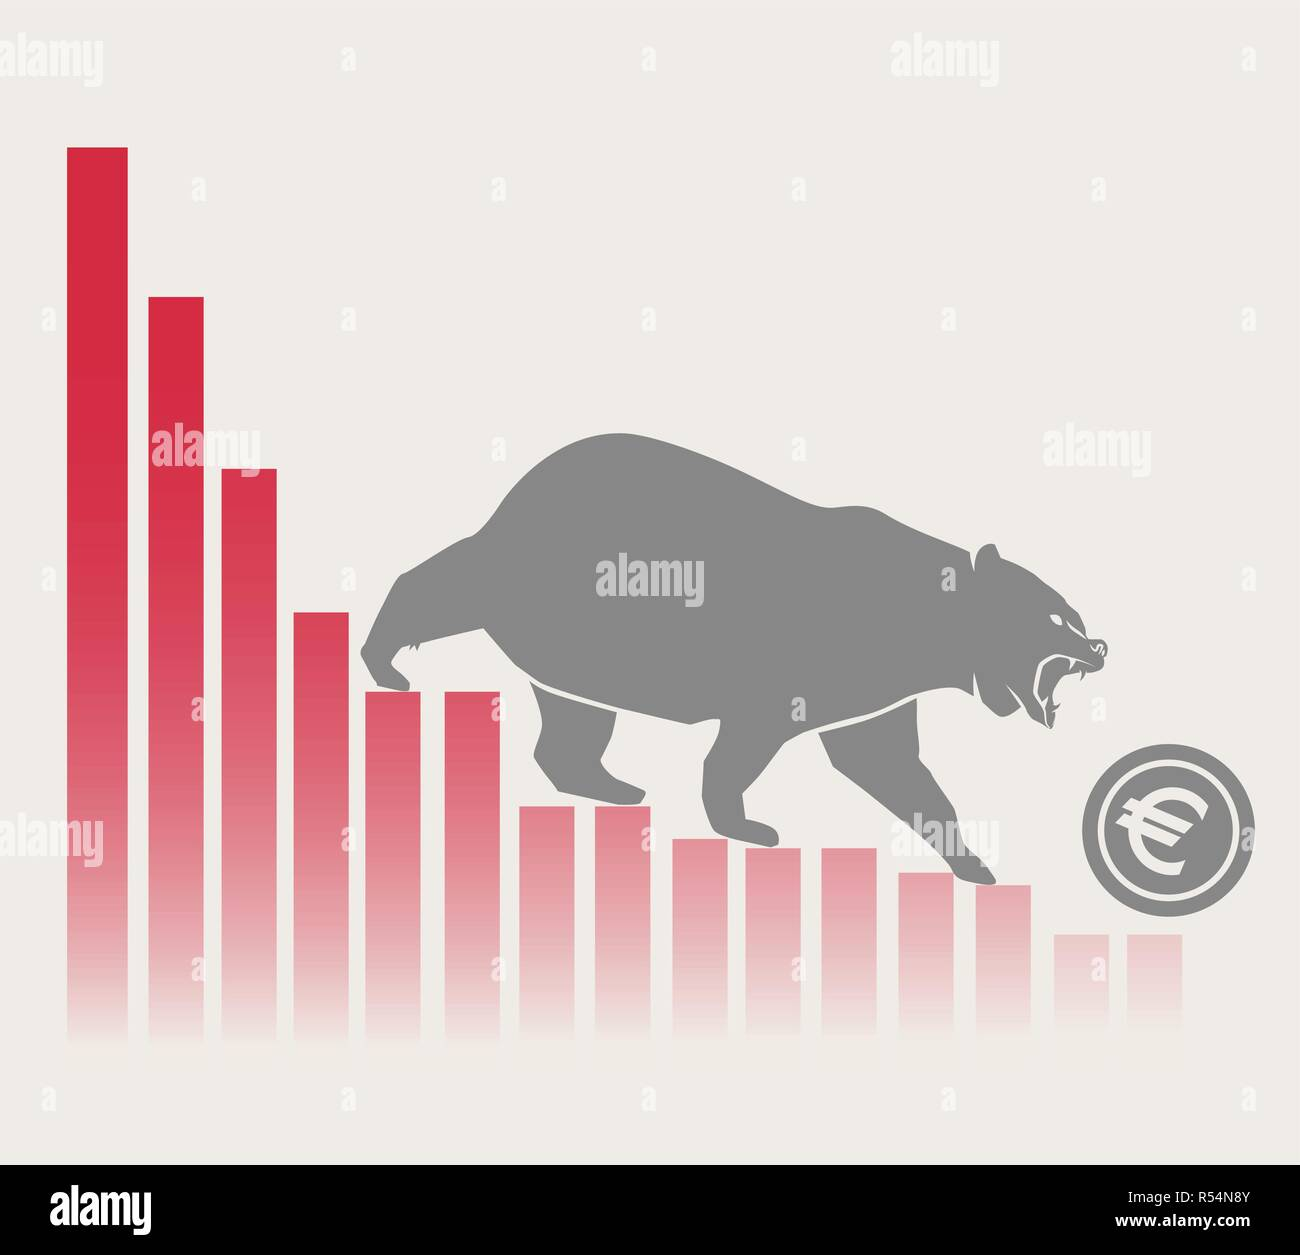 Bear moves Euro down on graph, negative currency market, grey background - Stock Vector